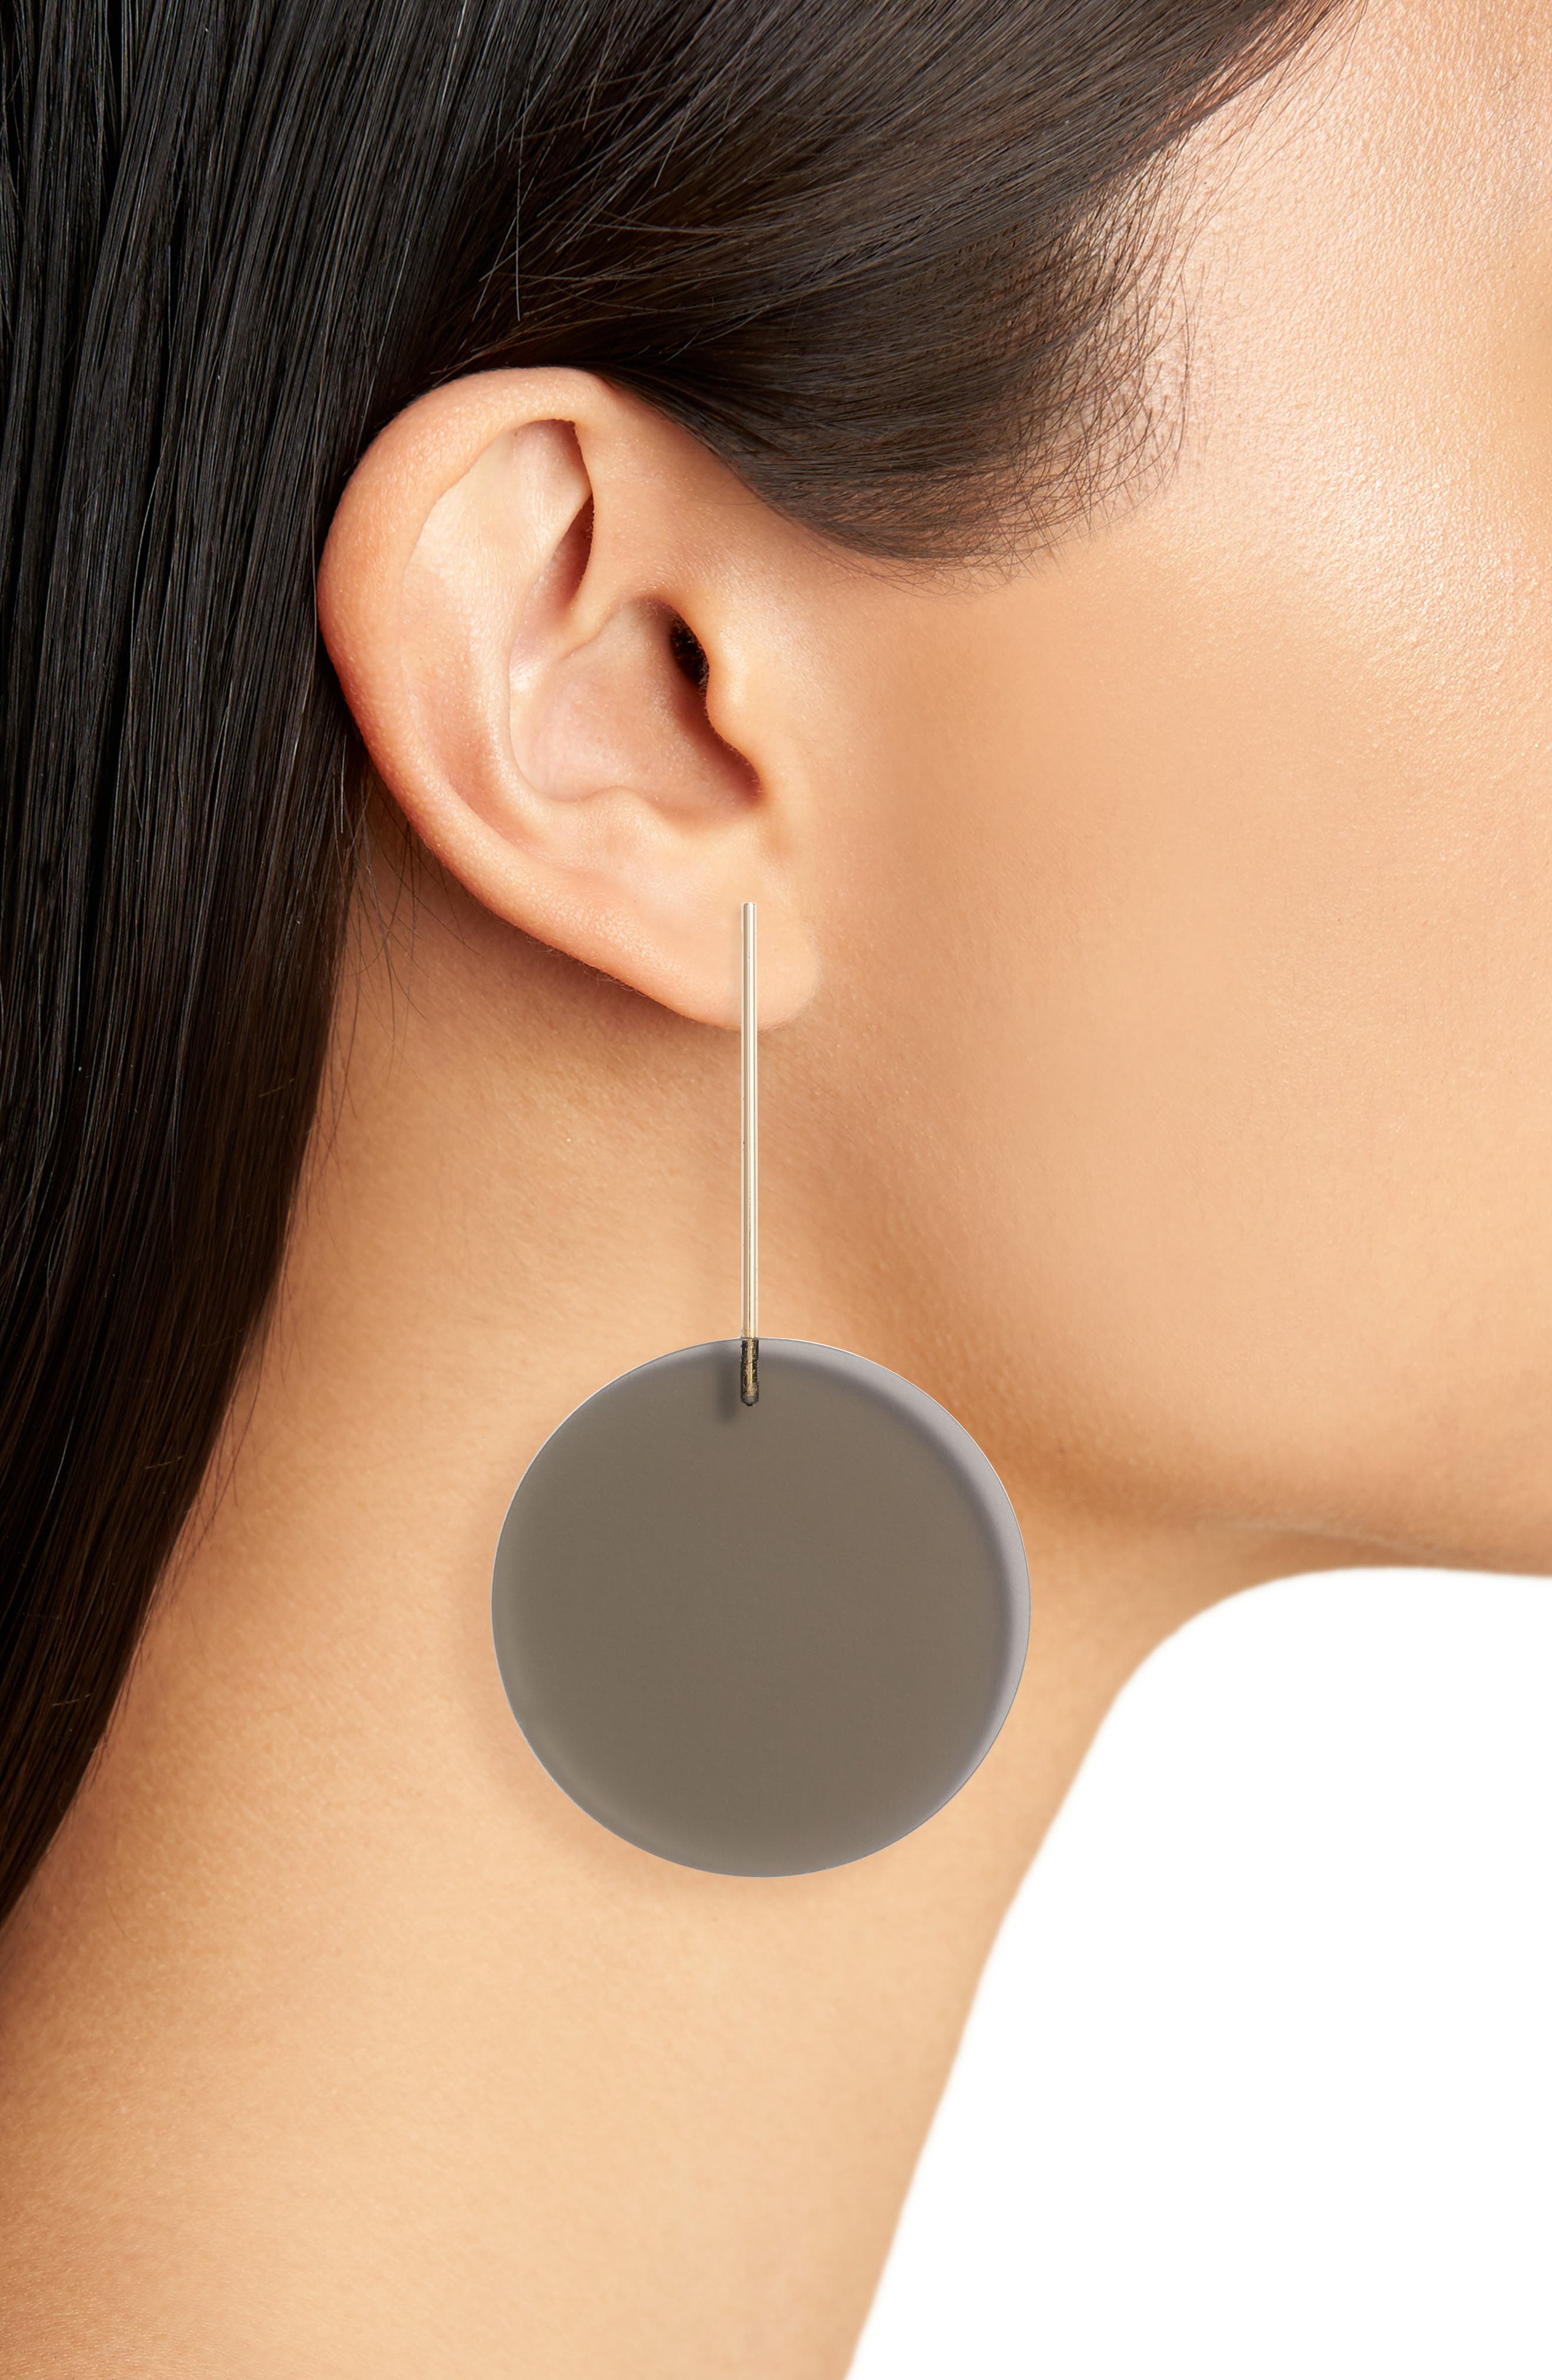 Translucent Disc Earrings,                             Alternate thumbnail 2, color,                             GOLD/ BLACK DIAMOND